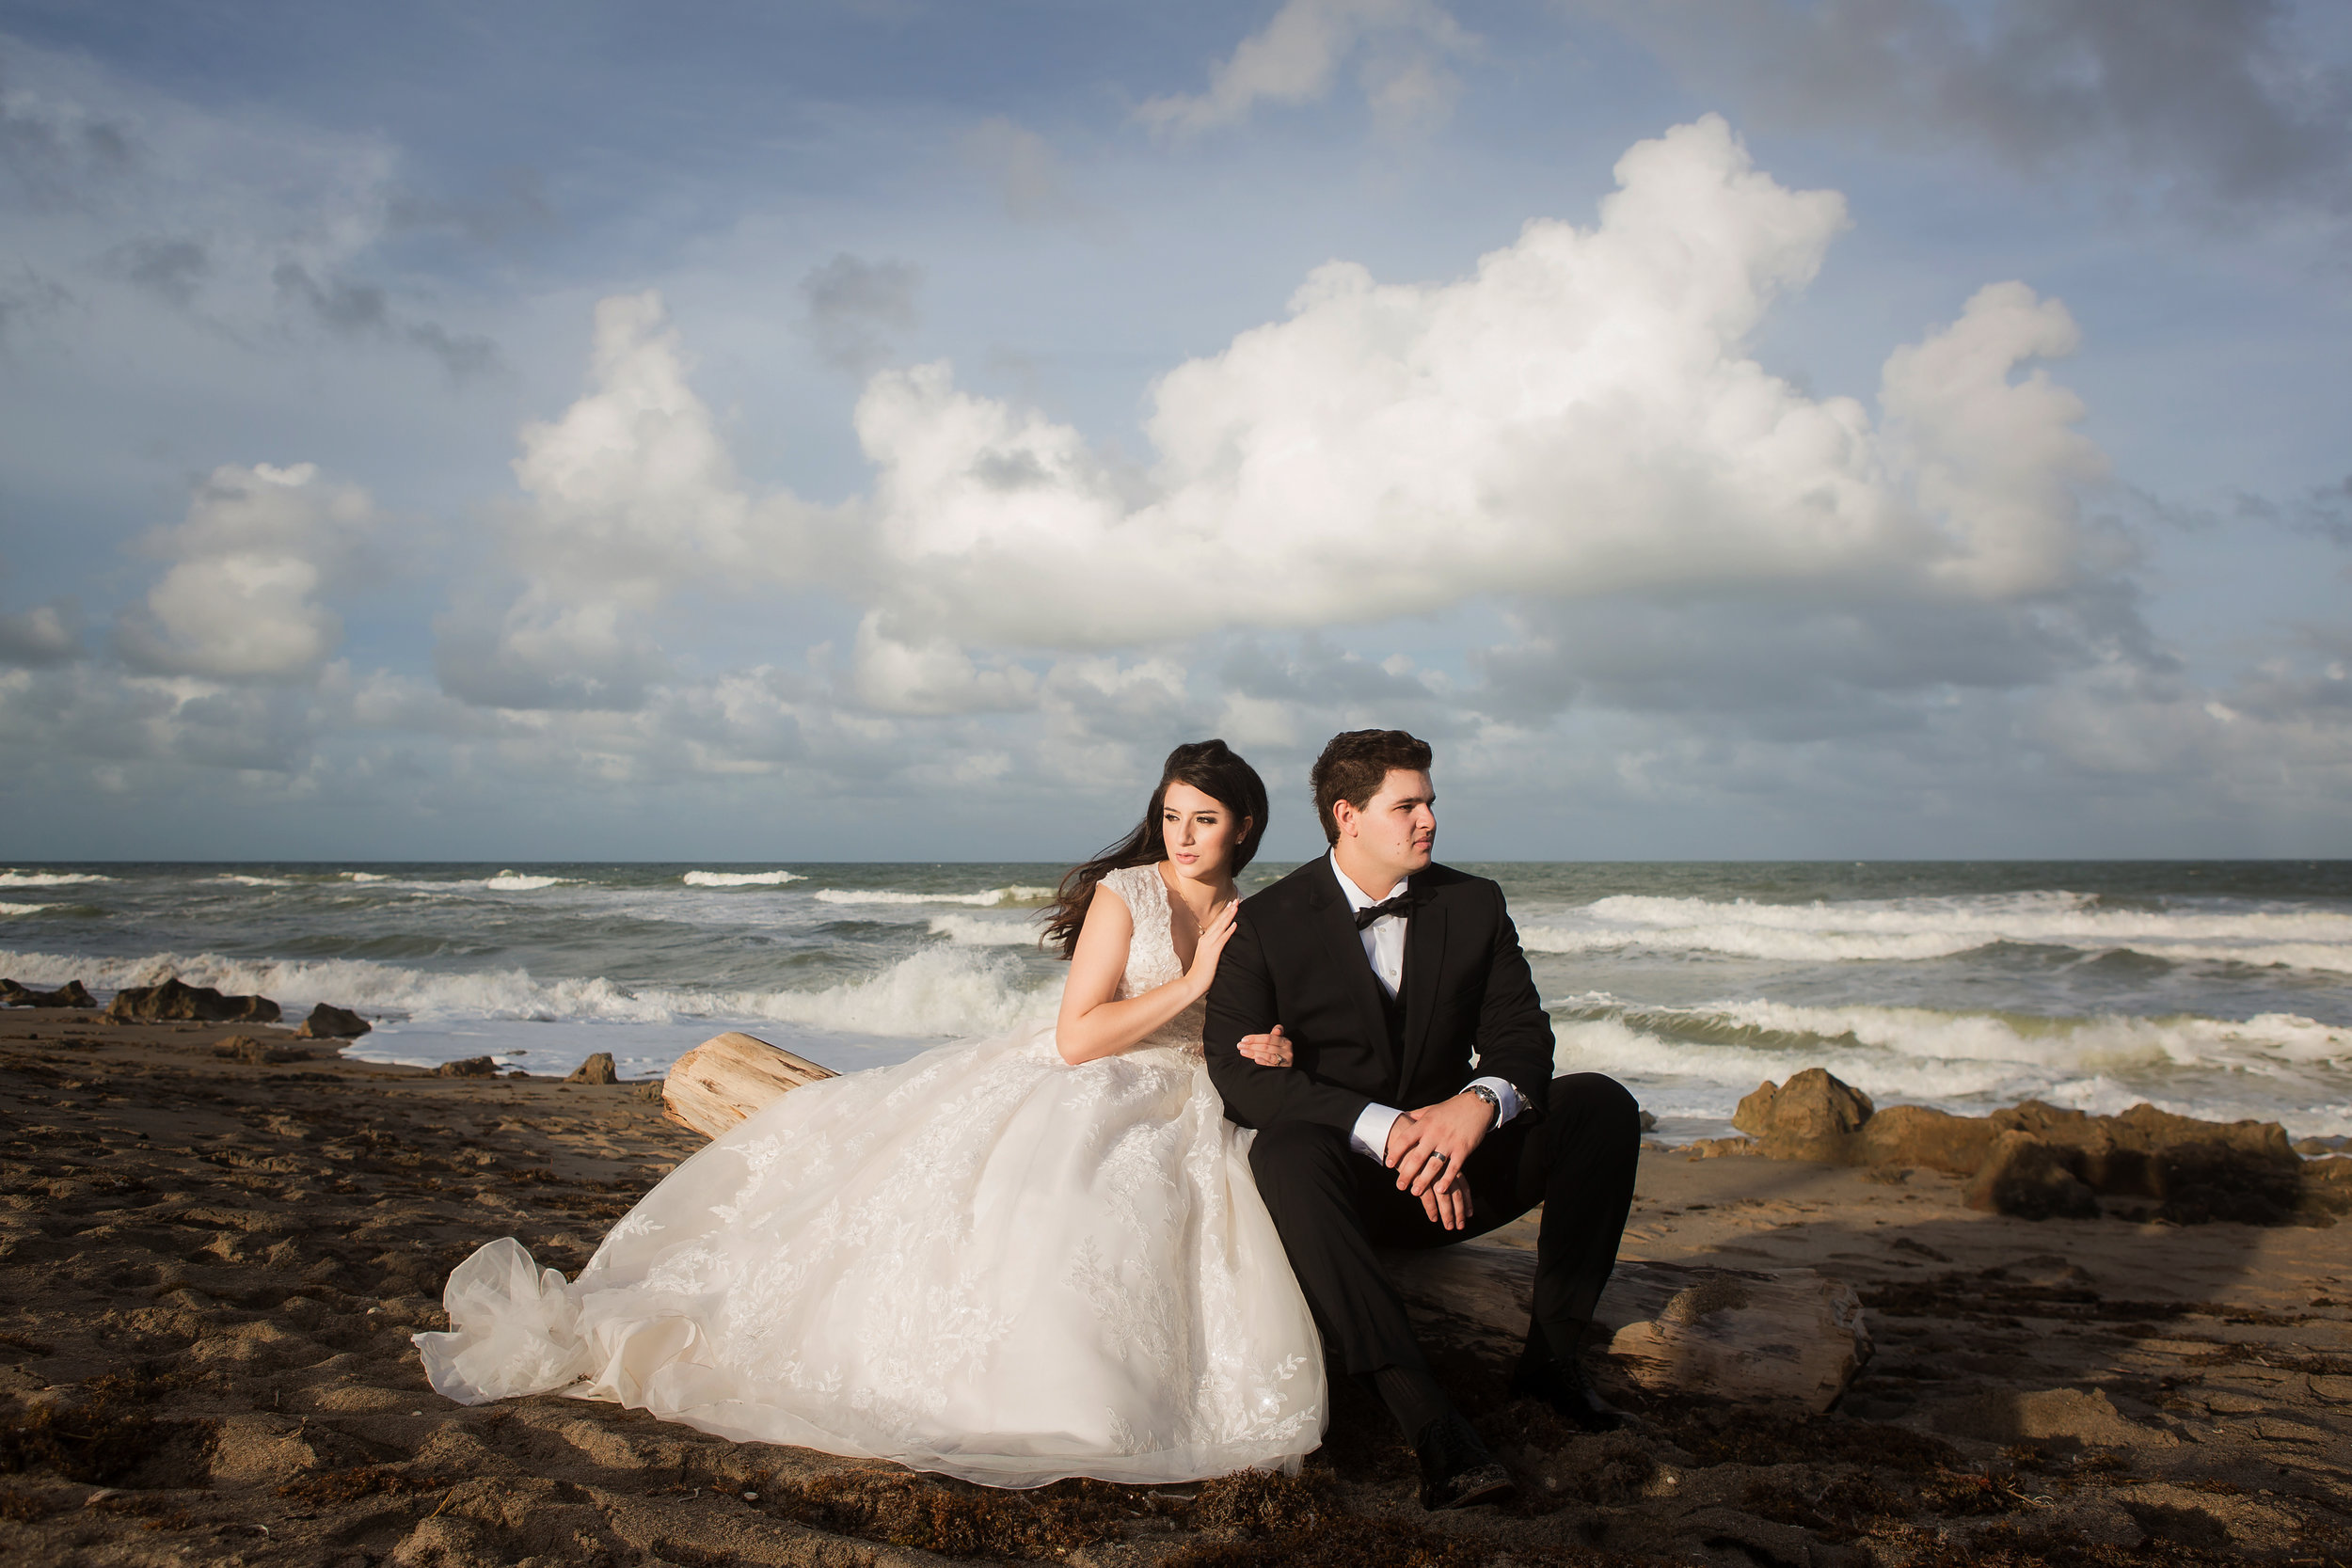 Bride and groom portrait session at the beach.